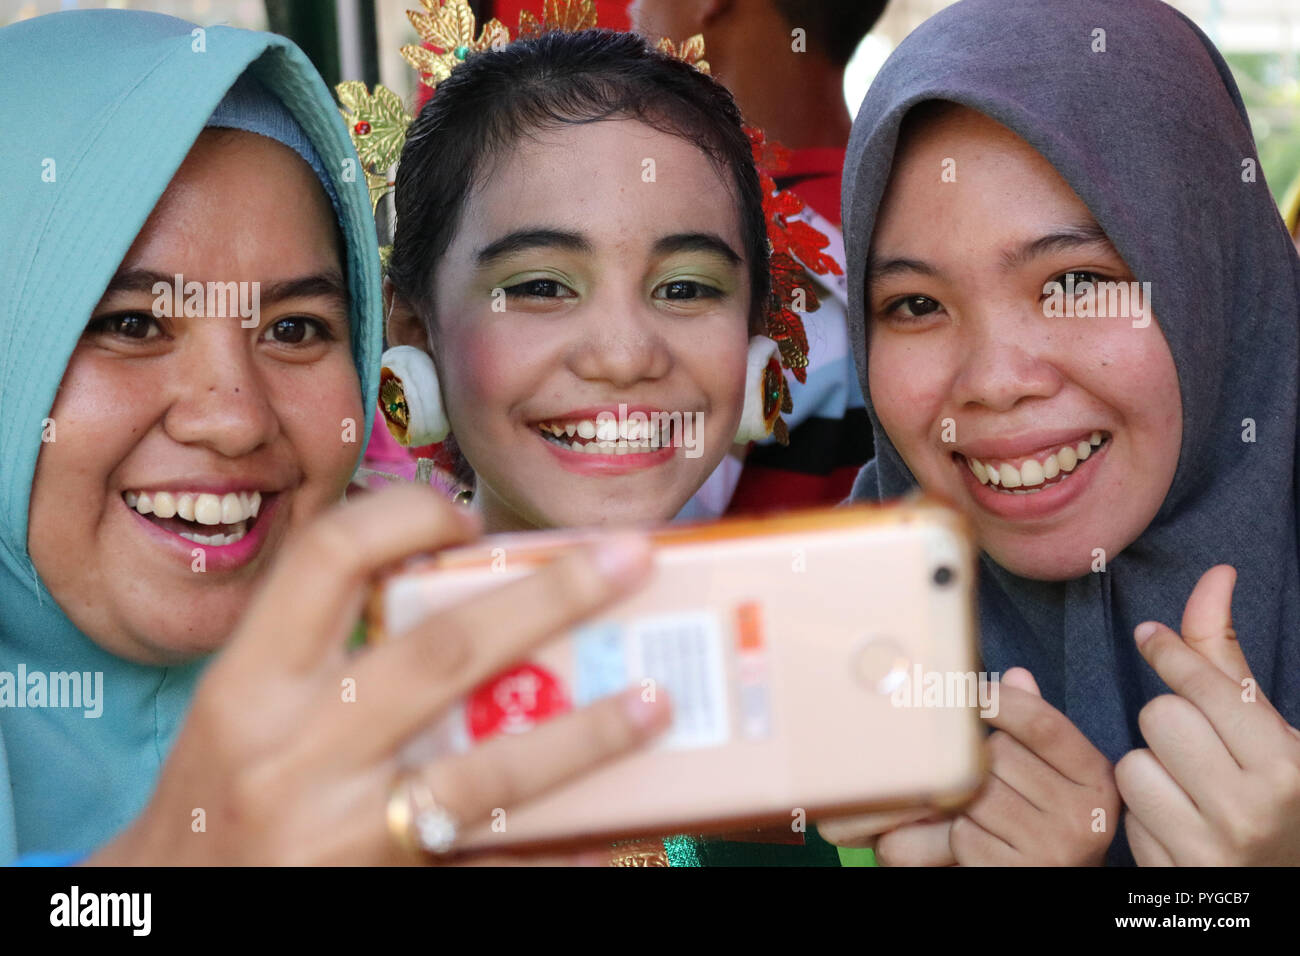 Makassar, Indonesia. 28th Oct 2018. Children with special needs and people with disabilities in Makassar commemorate Youth Pledge Day with a variety of unique activities, Sunday October 28, 2018. Accompanied by parents, these children carry out ceremonies and fashion shows in a unique way Credit: Herwin Bahar/Alamy Live News - Stock Image